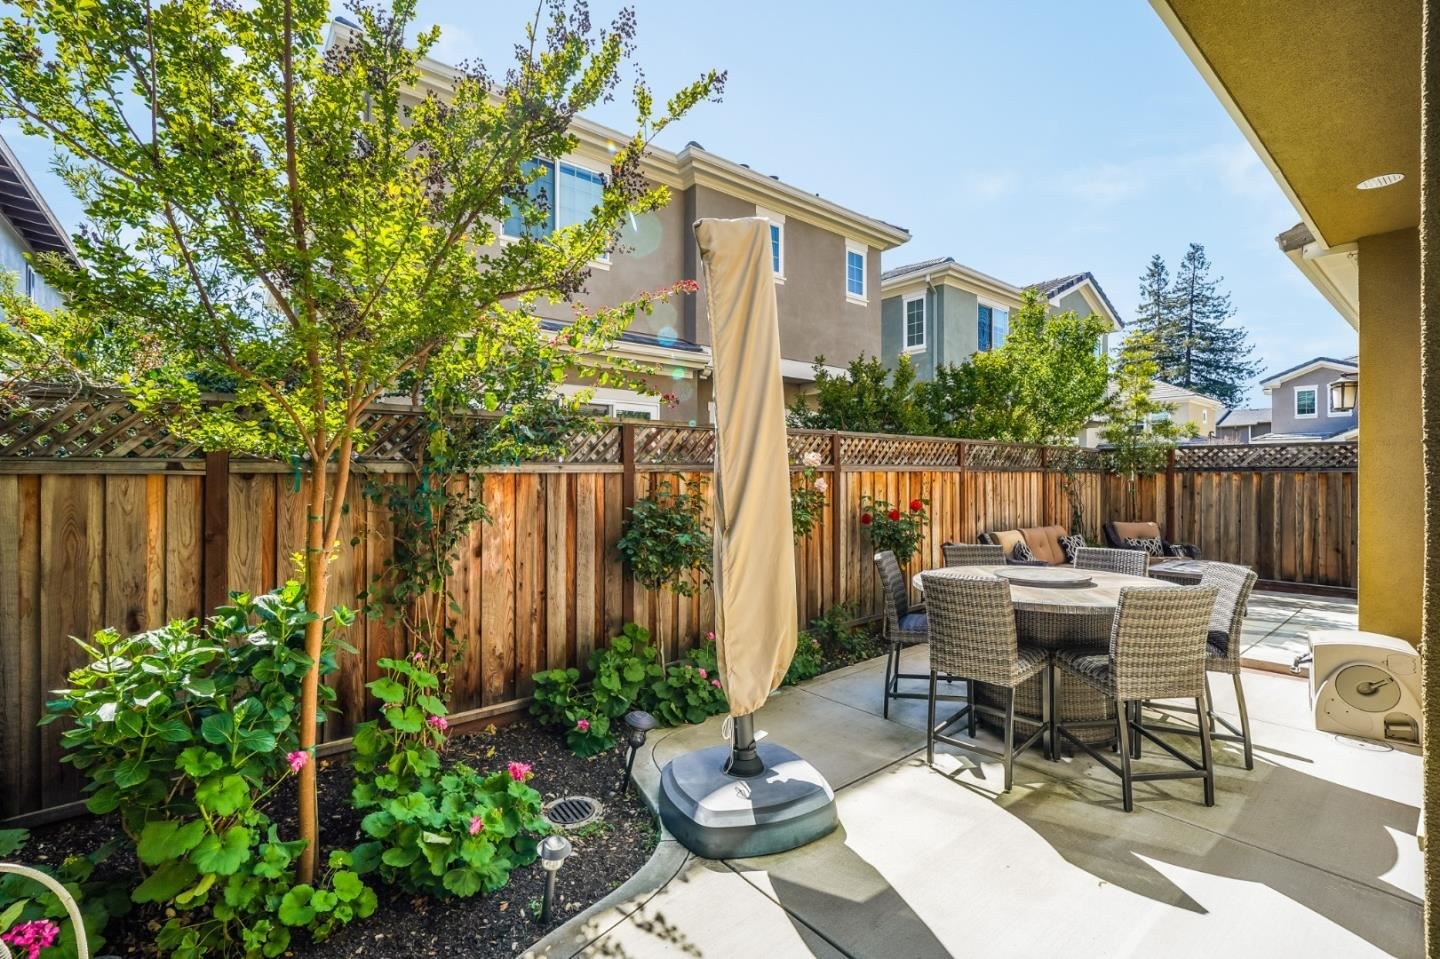 8 Kentfield Court, Redwood City, CA 94061 - #: ML81839485